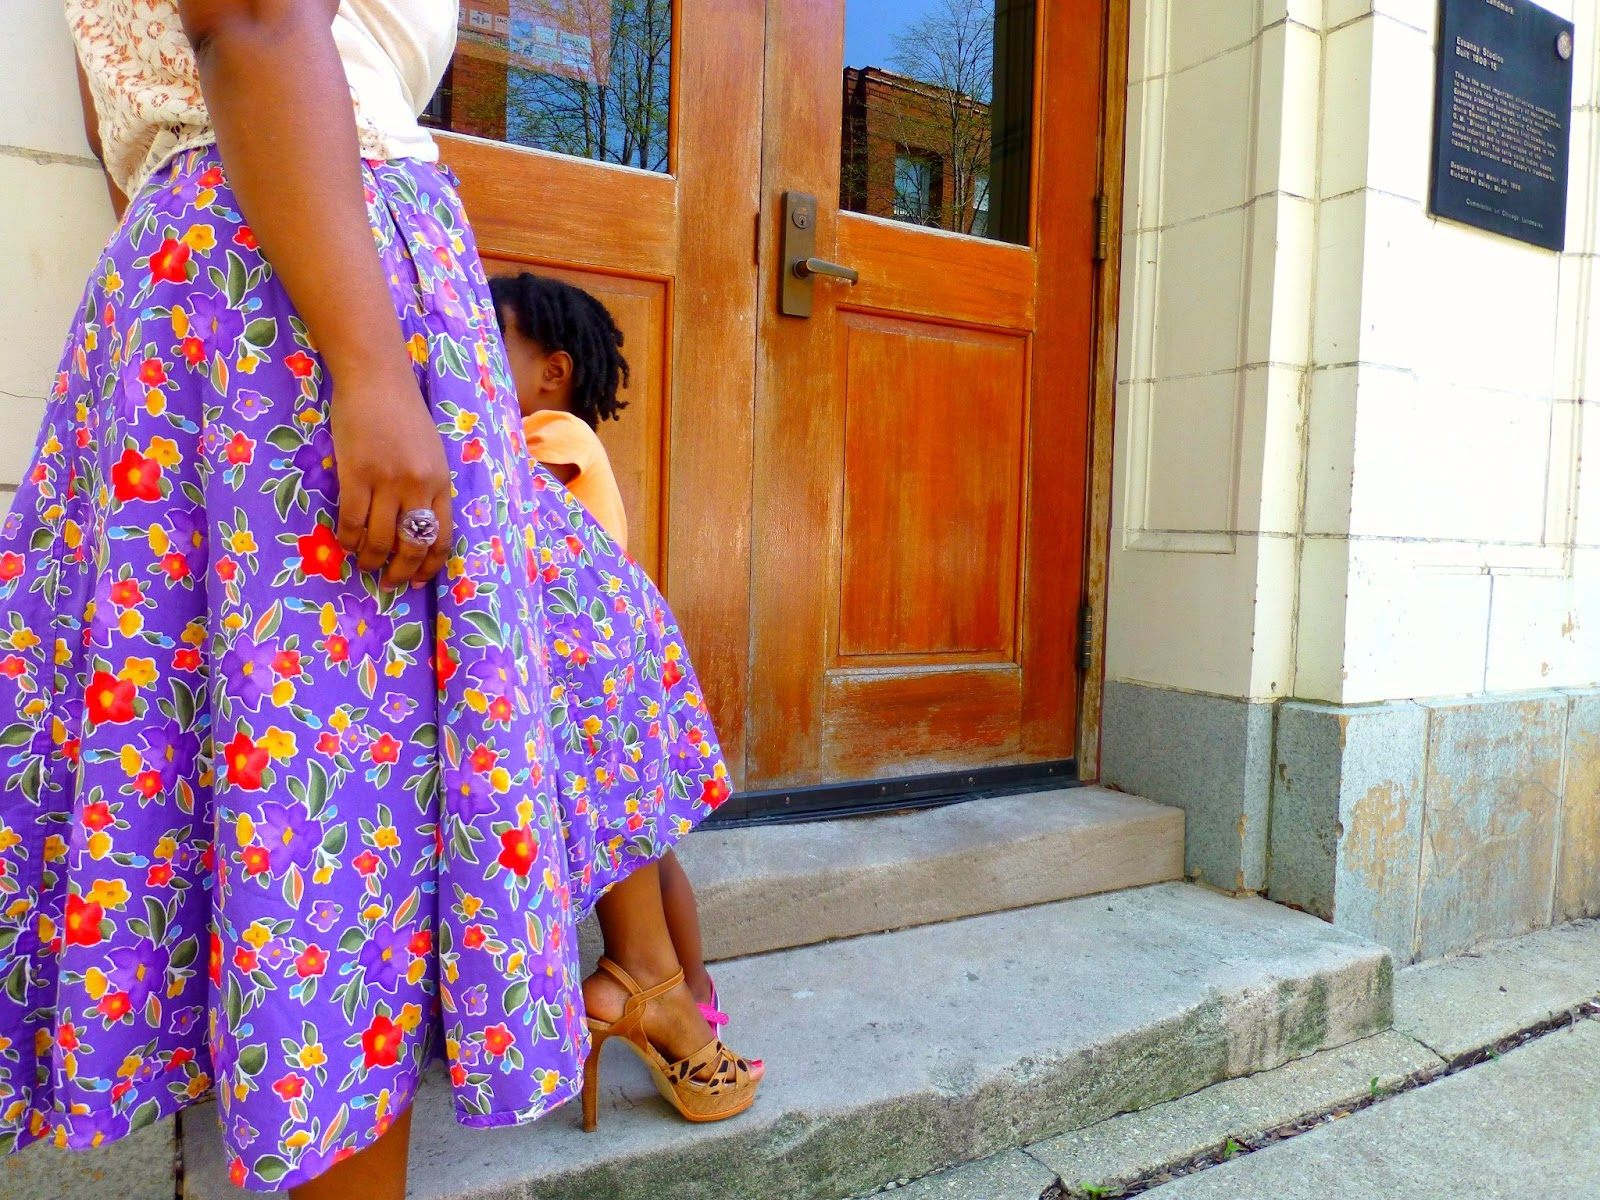 Floral mid skirt